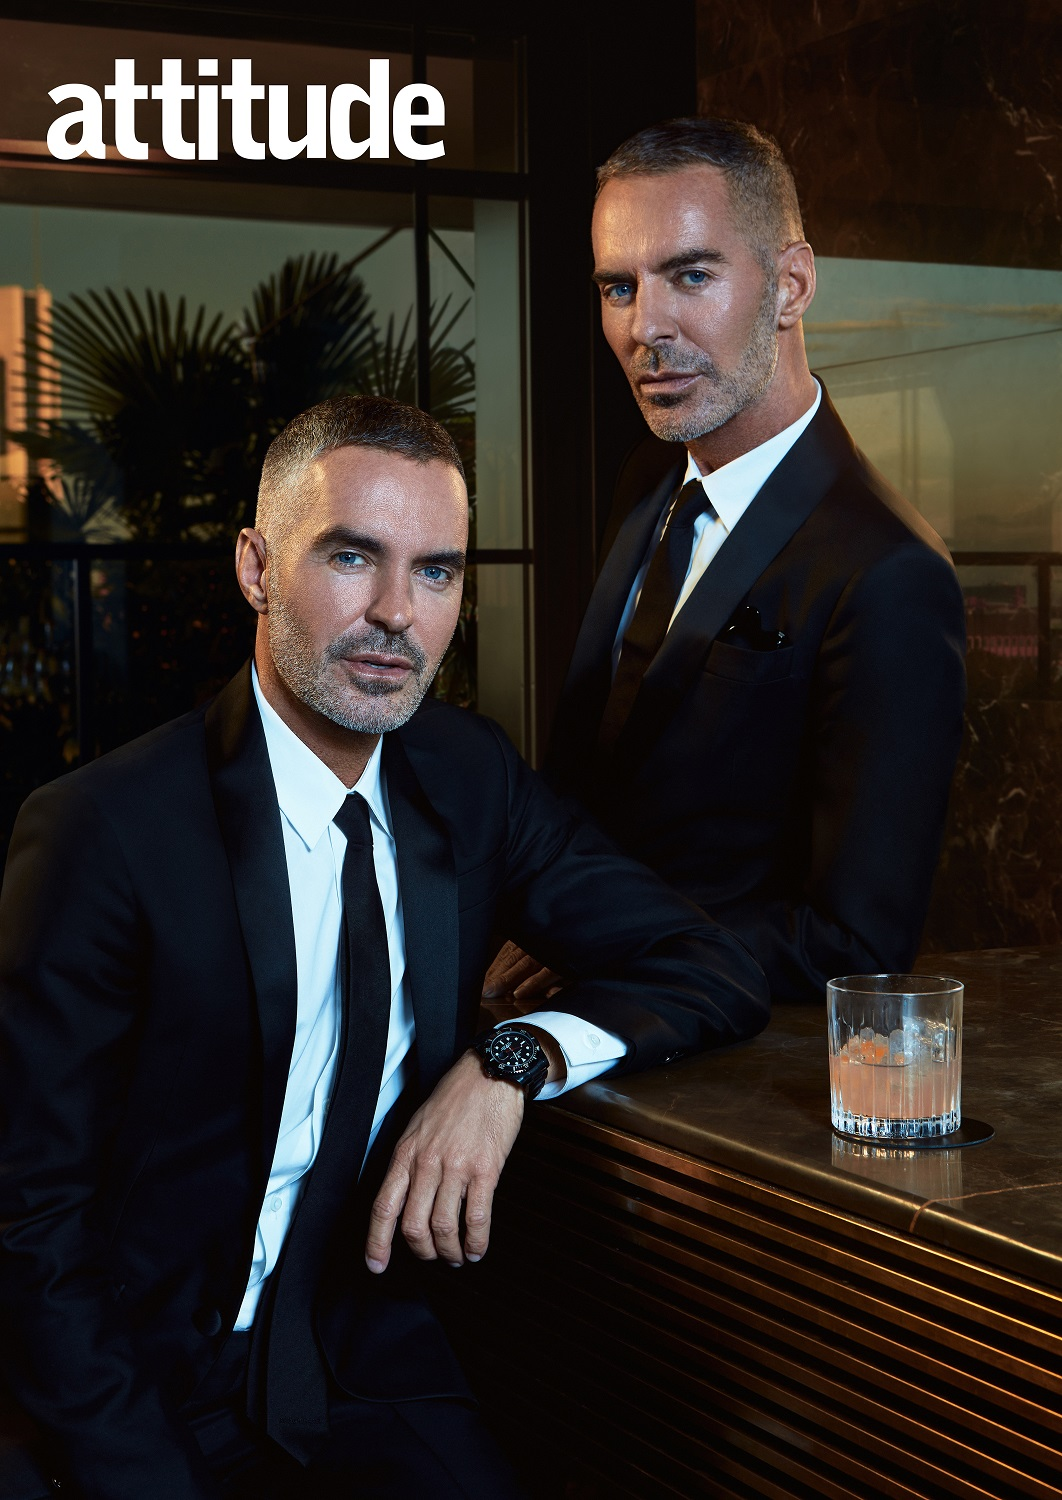 Dsquared2 S Dean And Dan Caten On Homophobic Bullying Attitude Co Uk